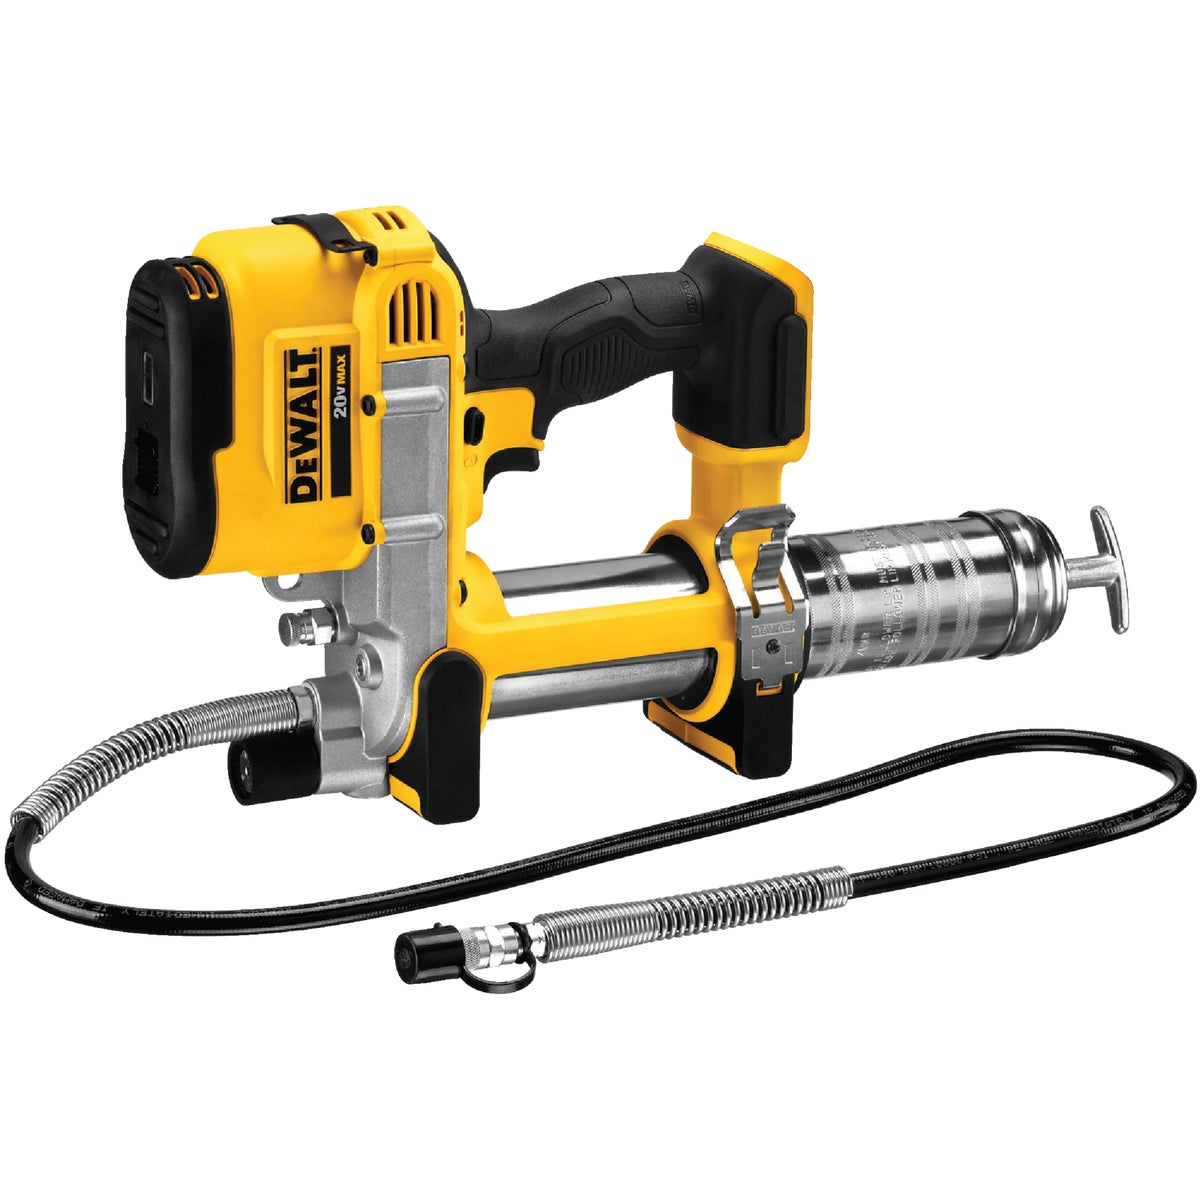 20V GREASE GUN - DCGG571B by DeWalt